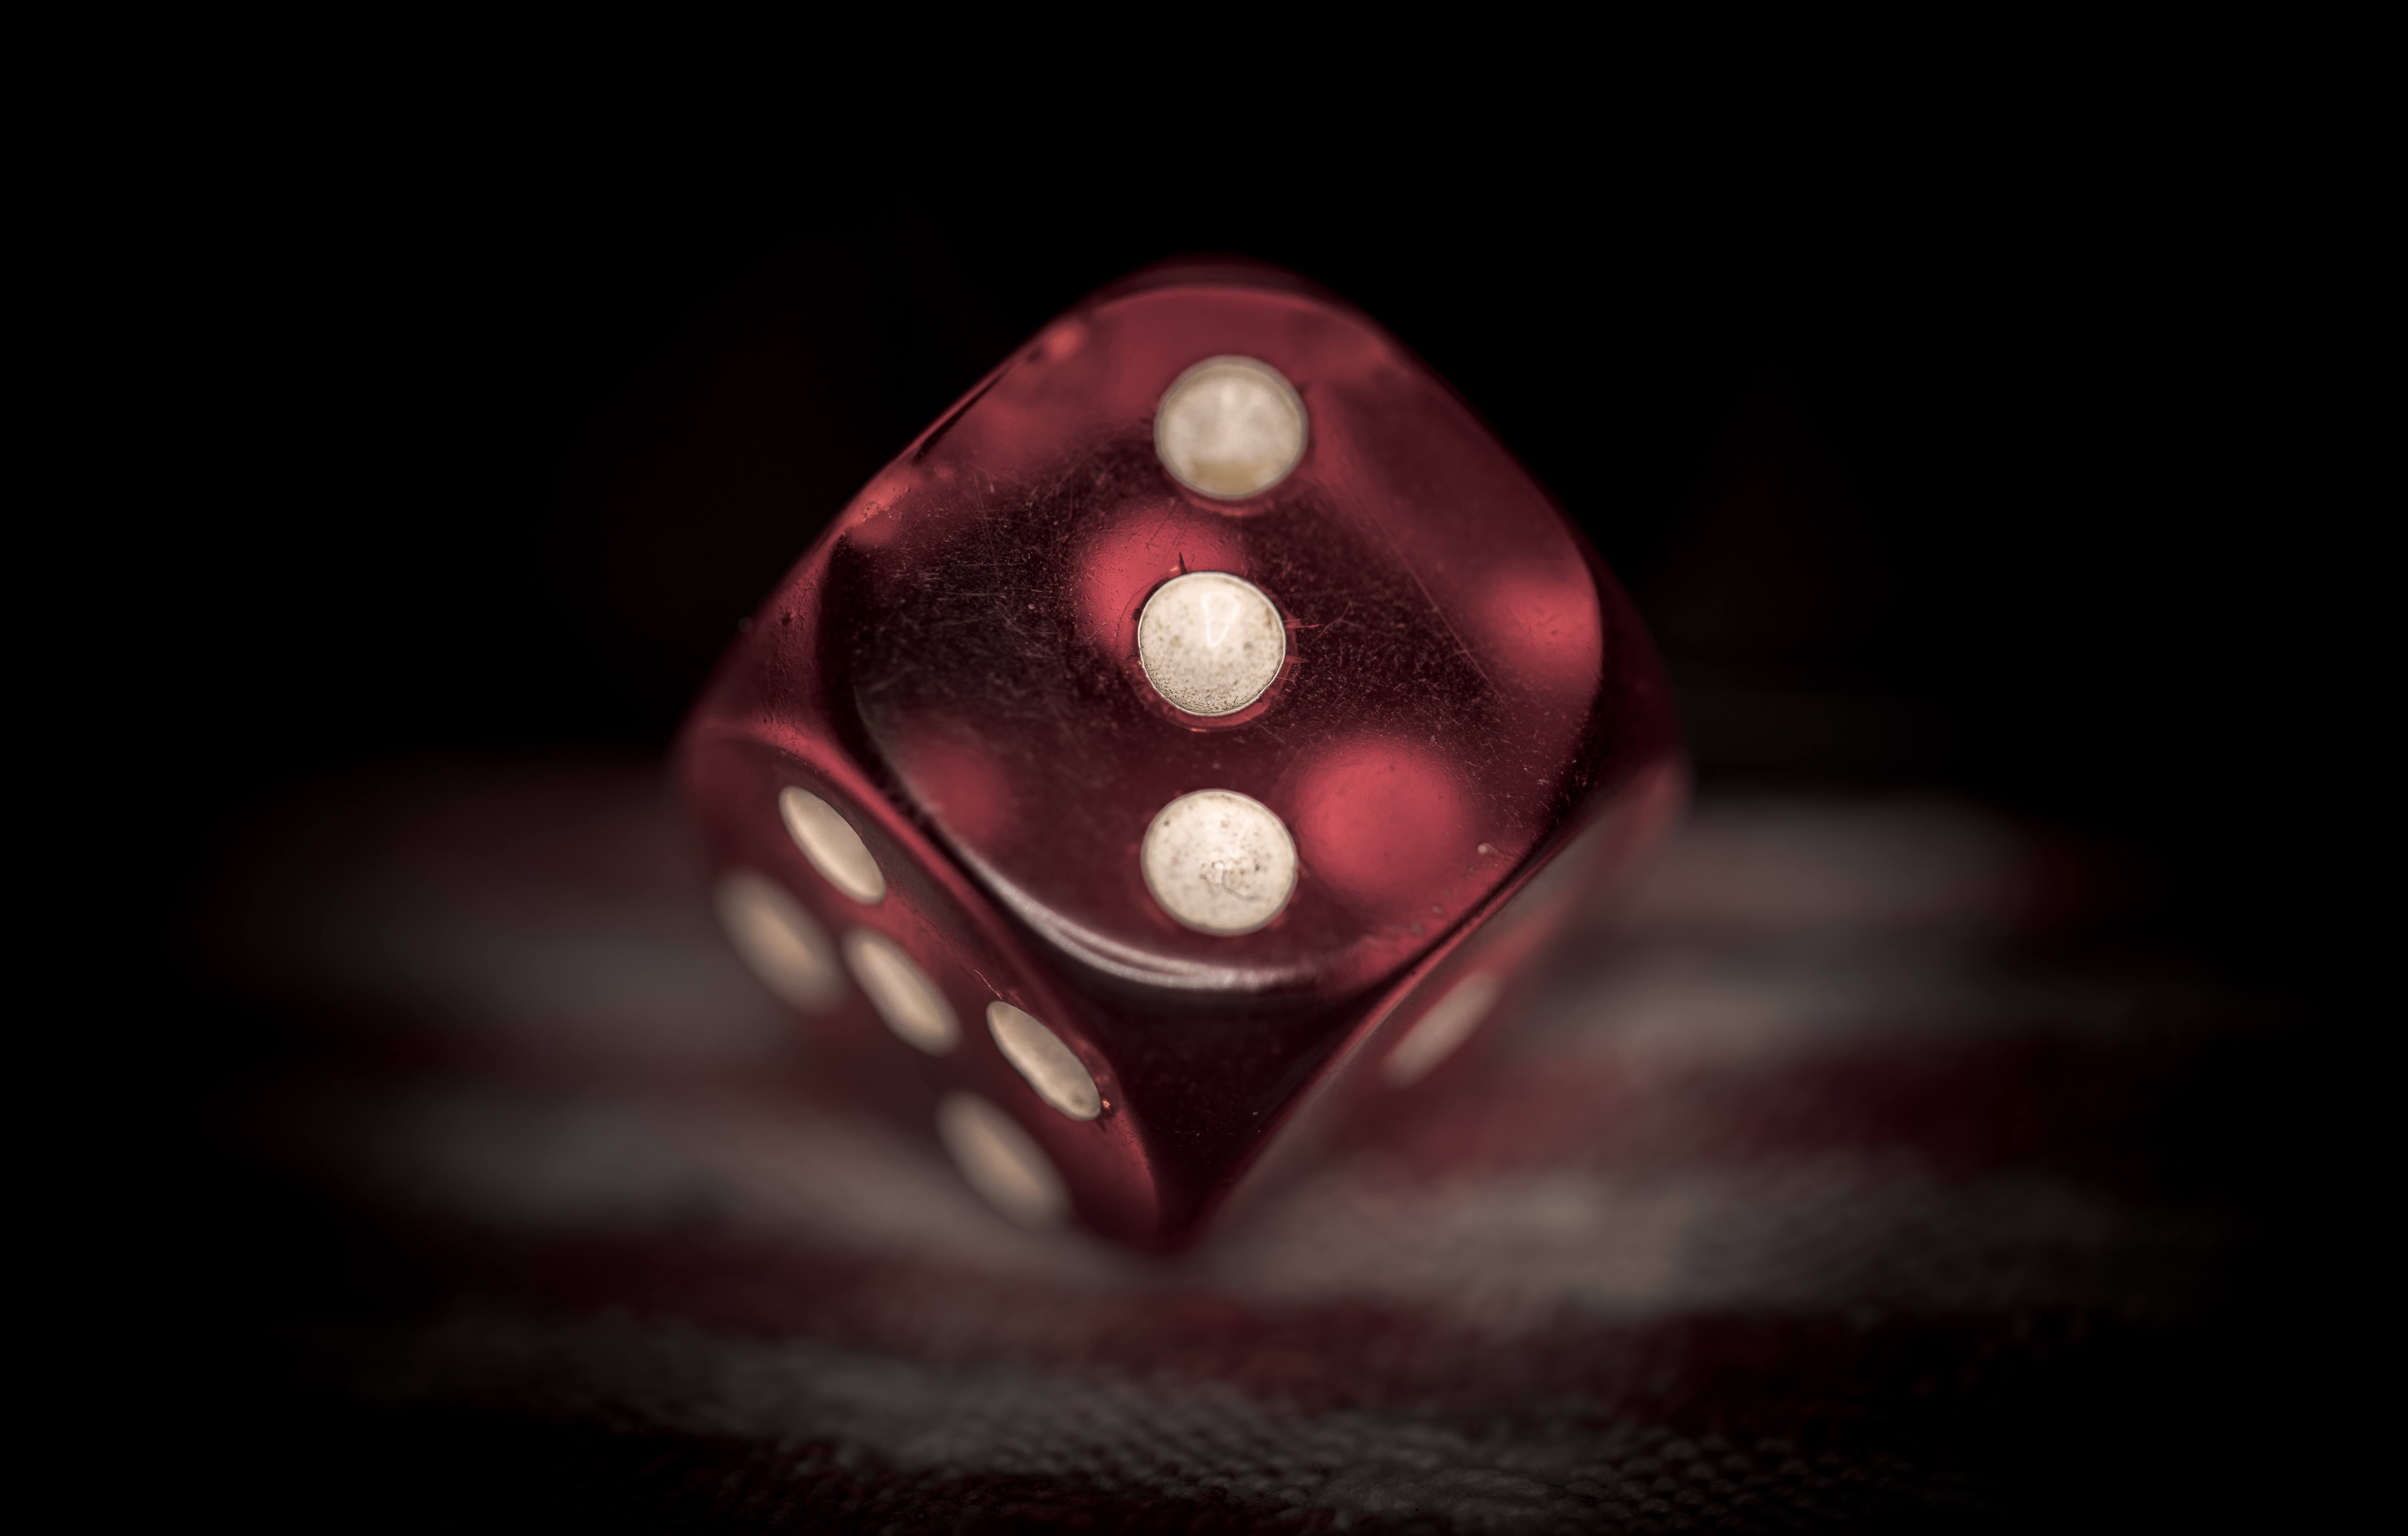 a single red die showing the number 3